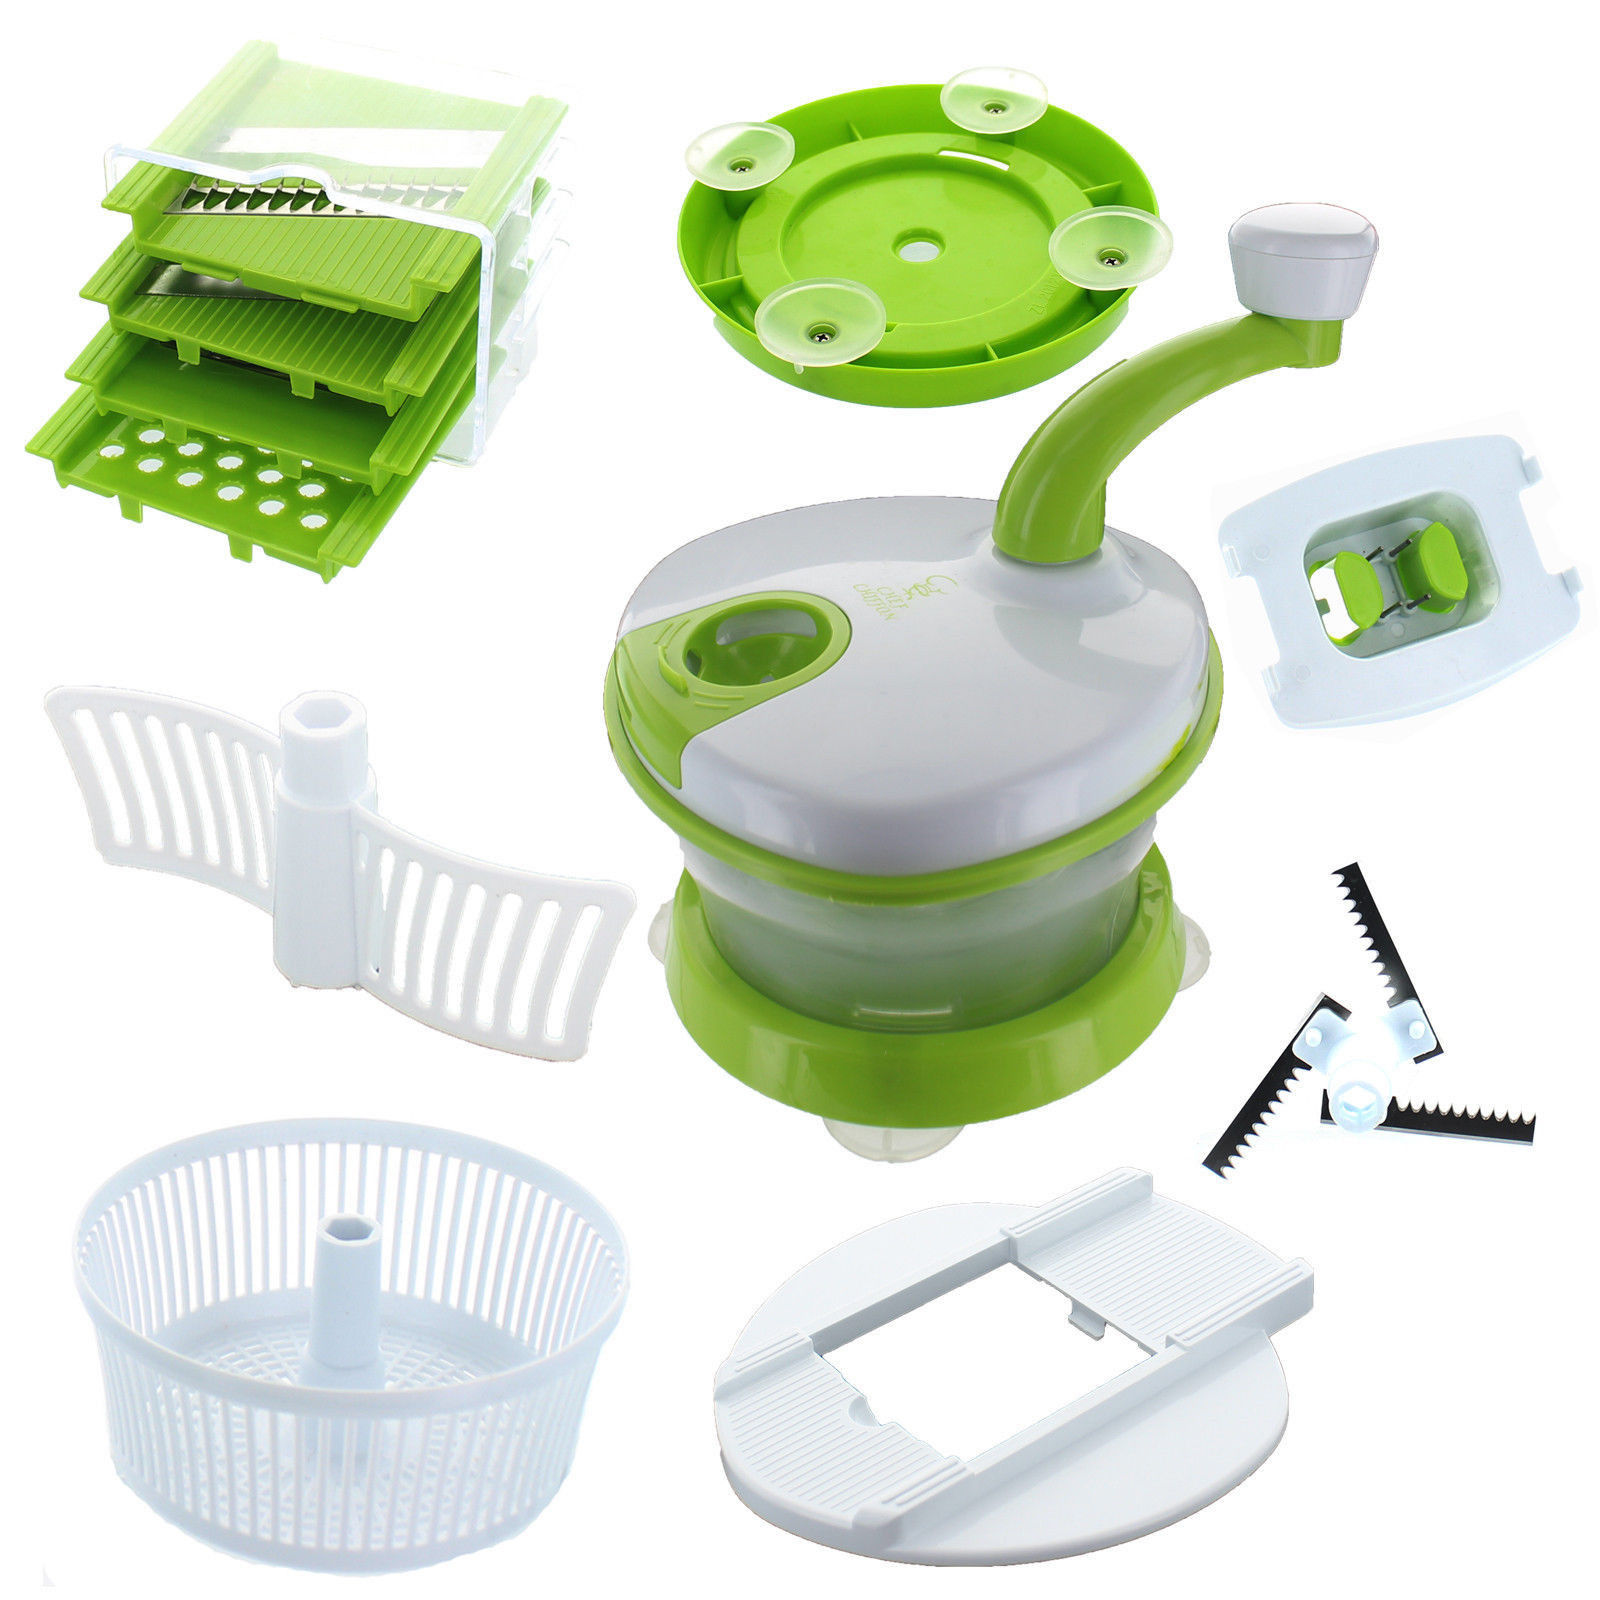 Chef Chiffon Food Processor All In One Salad Spinner Tri Blade Chopper Slicer